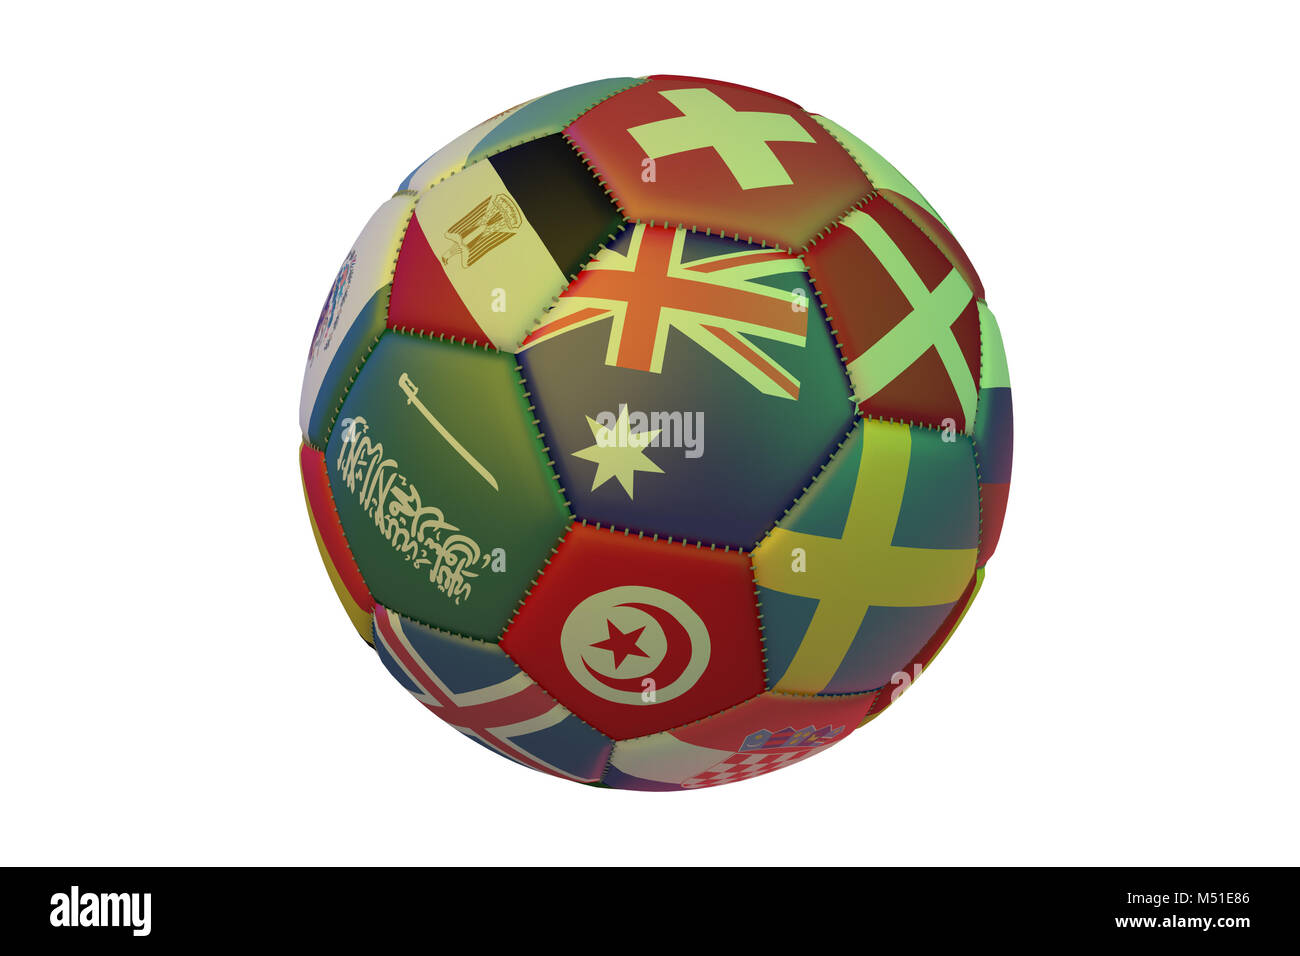 saudi arabia soccer ball stockfotos saudi arabia soccer. Black Bedroom Furniture Sets. Home Design Ideas